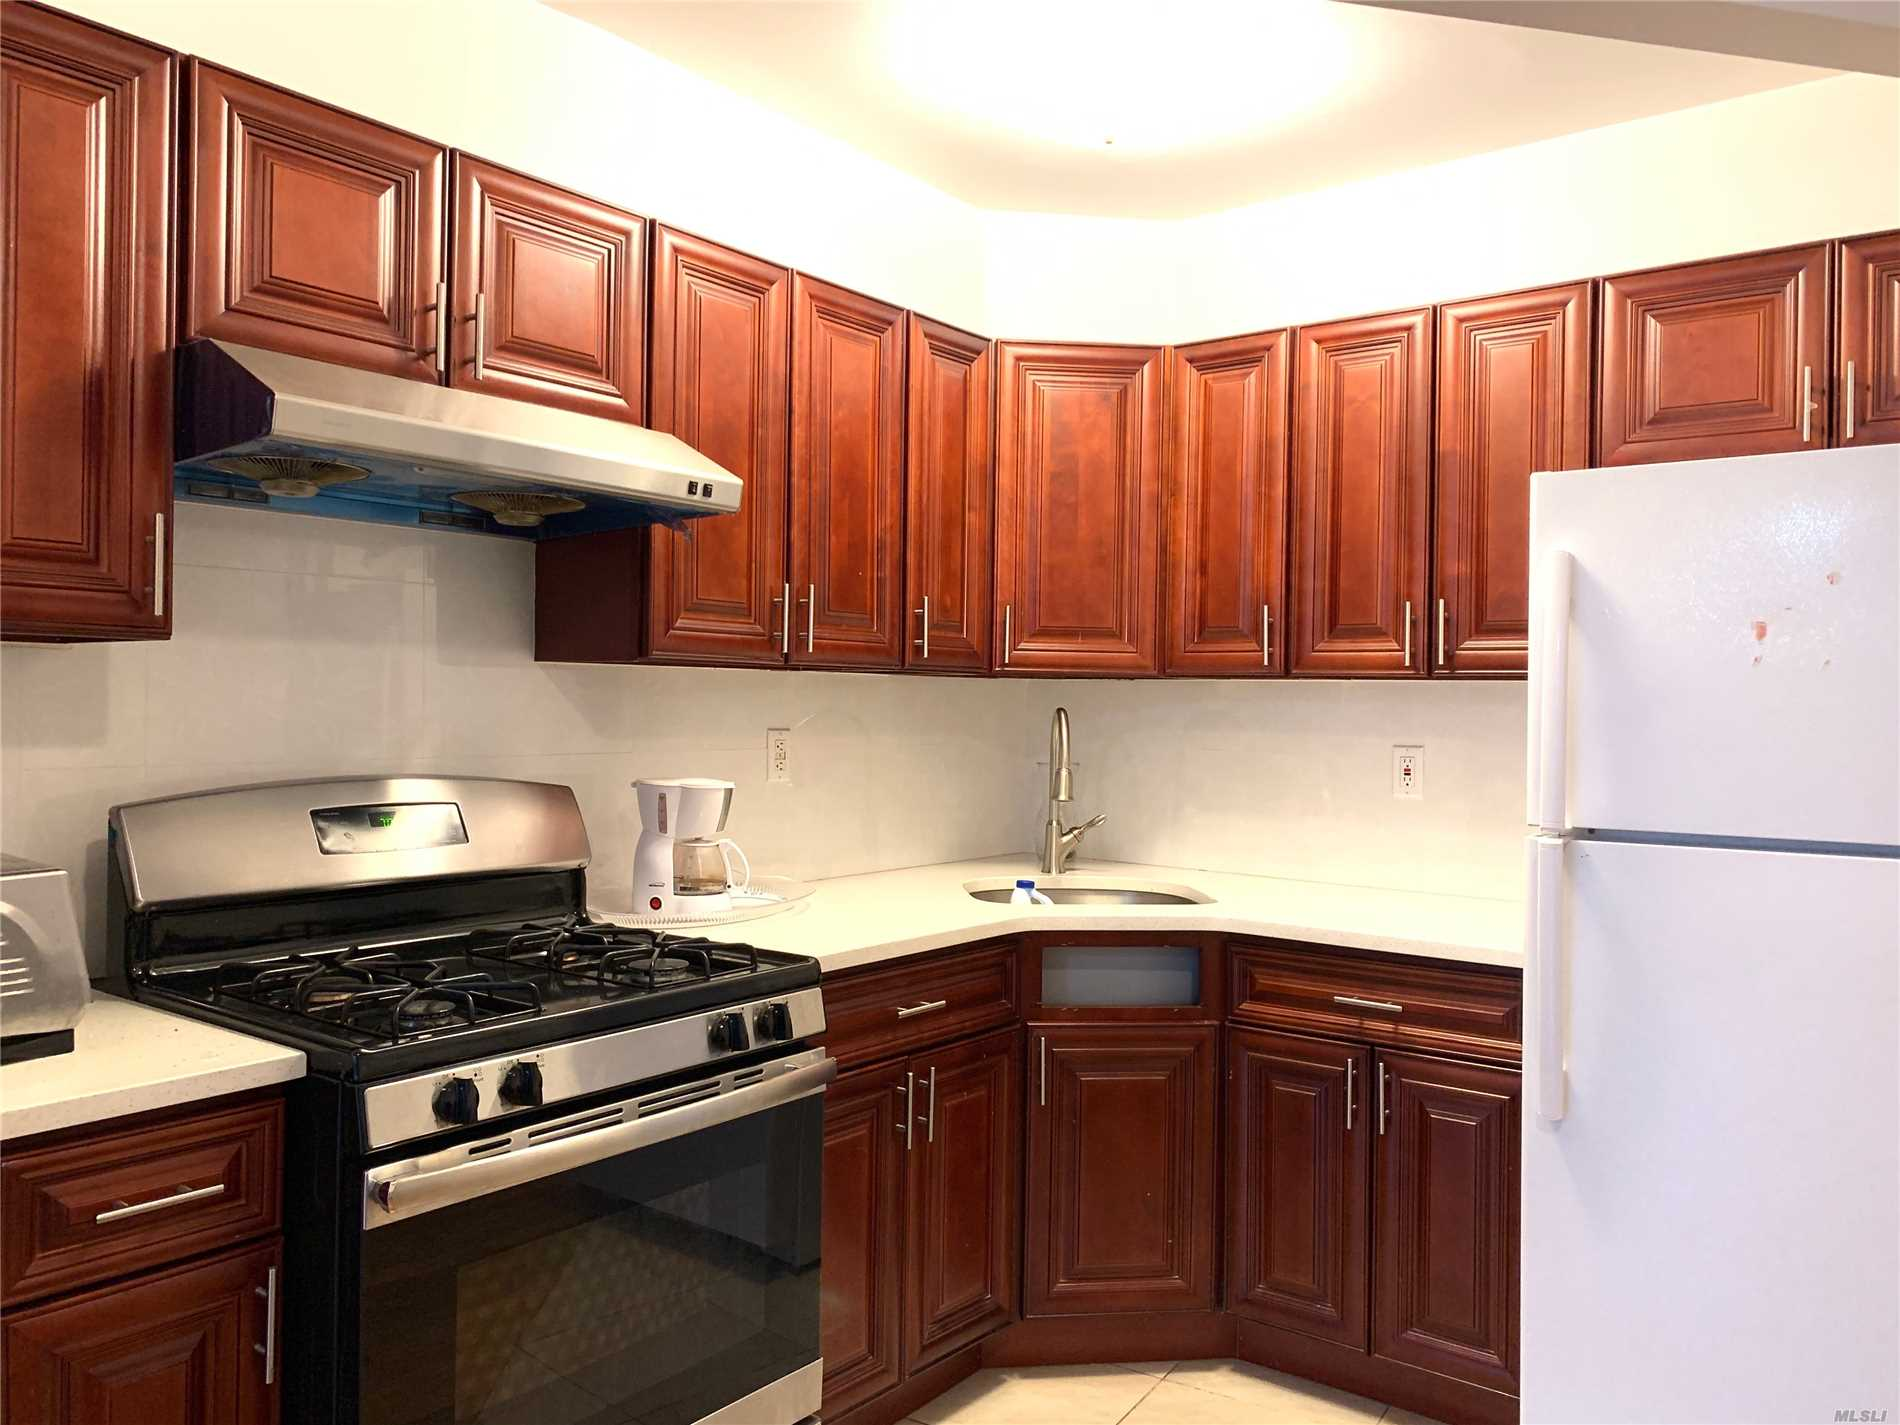 Bright and spacious unit on of the most beautiful blocks in rego park. Hardwood flooring, tiled bathrooms, stainless steel appliances, and much more. Laundry in building. Close to park, school, supermarket, shops and public transportation. Muse SEE!!!